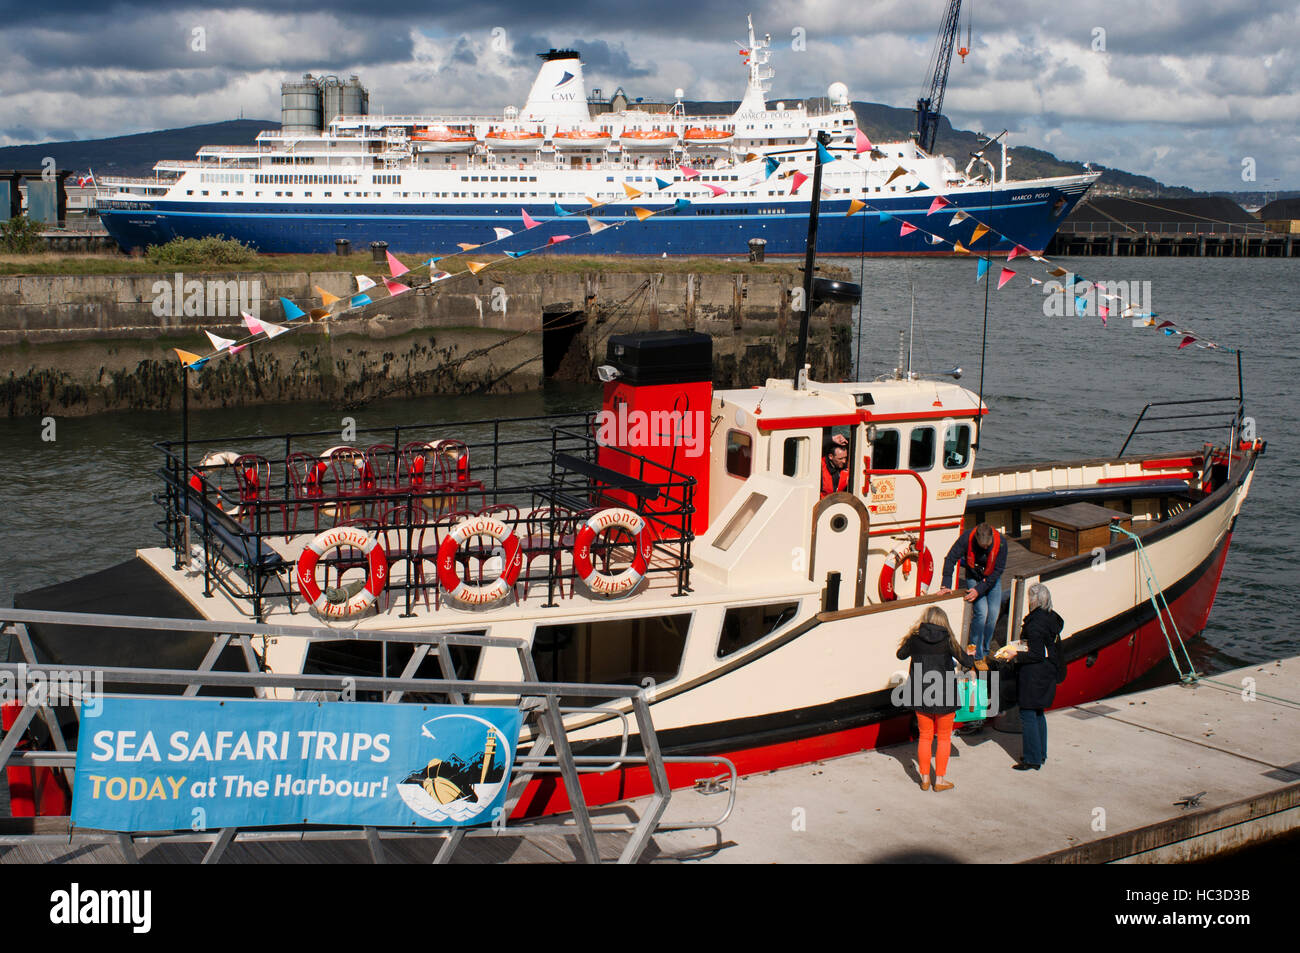 The Red Hulled Tourist Boat Mona Moored in The River Lagan in Belfast Northern Ireland United Kingdom UK. The Lagan - Stock Image